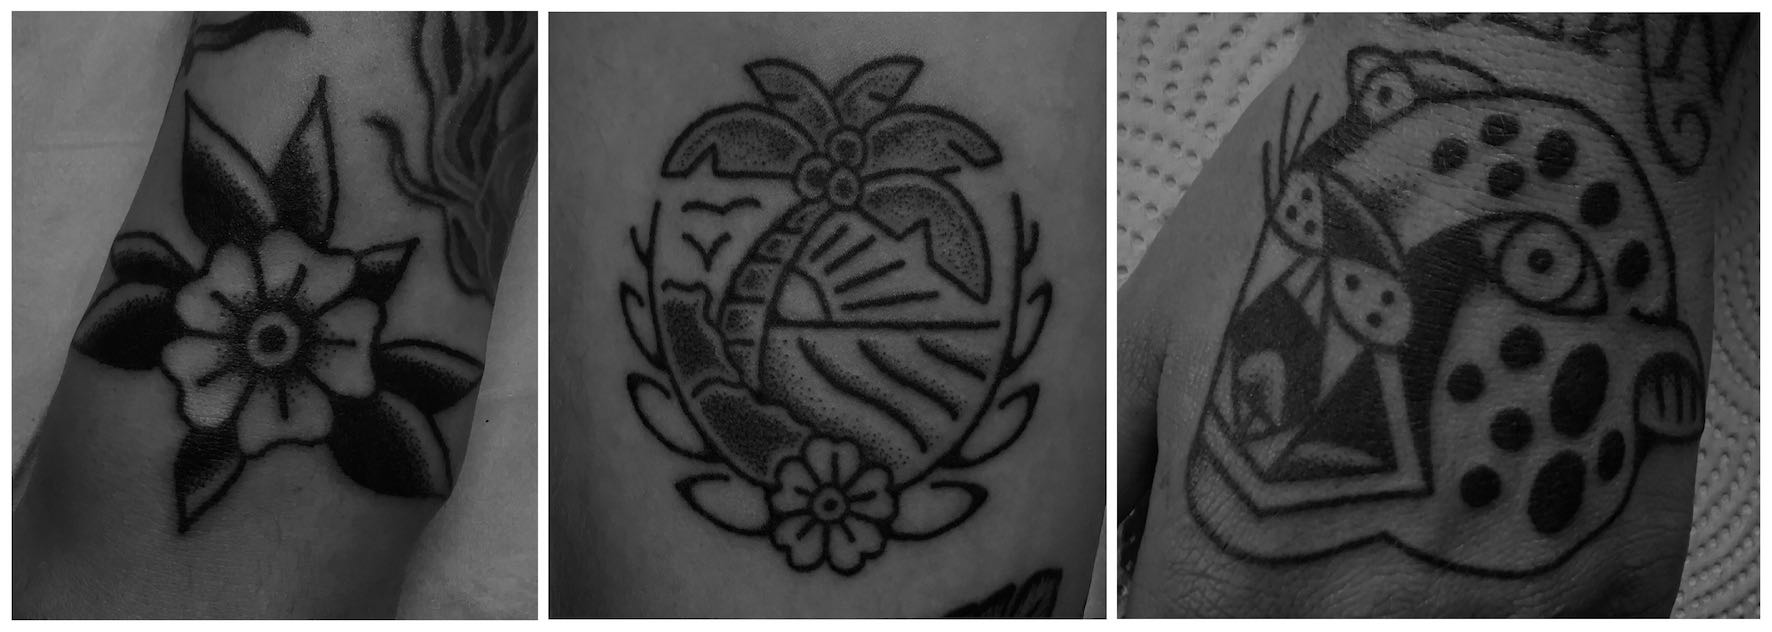 A selection of Hand Poked tattoos done by Tarzan